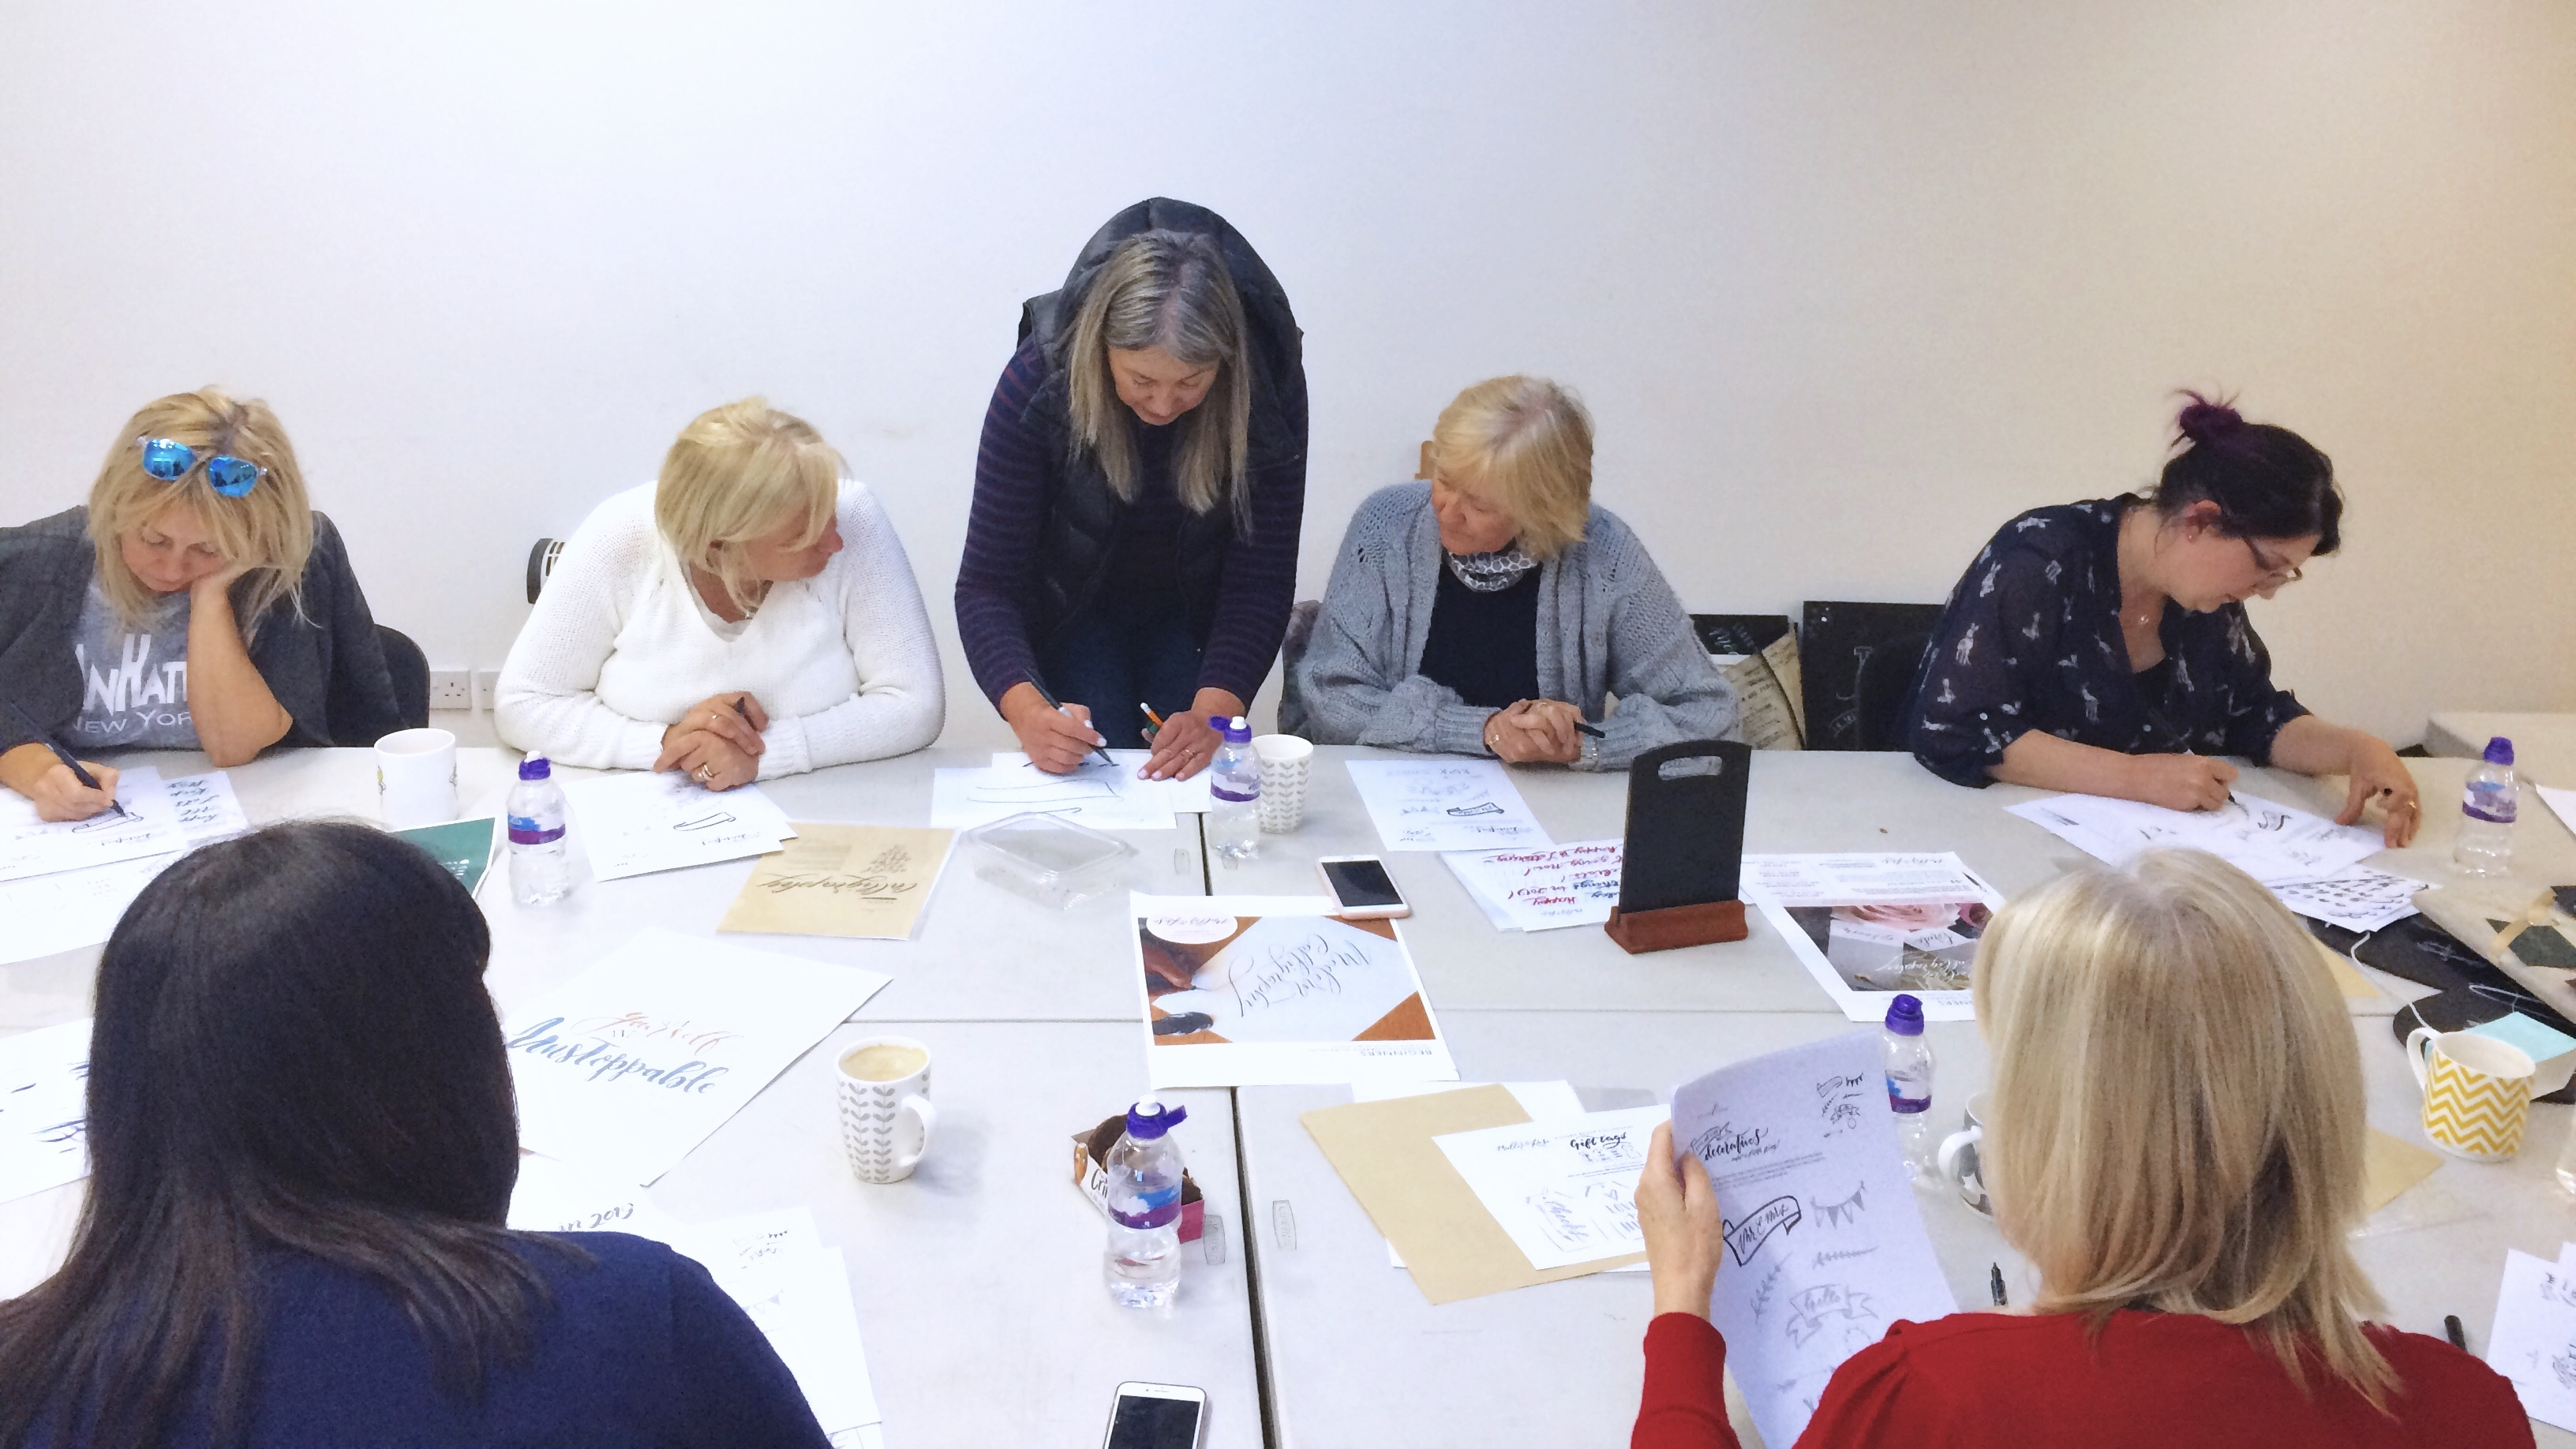 Modern Wedding Calligraphy workshop at CASS Art Liverpool with Mellor and Rose